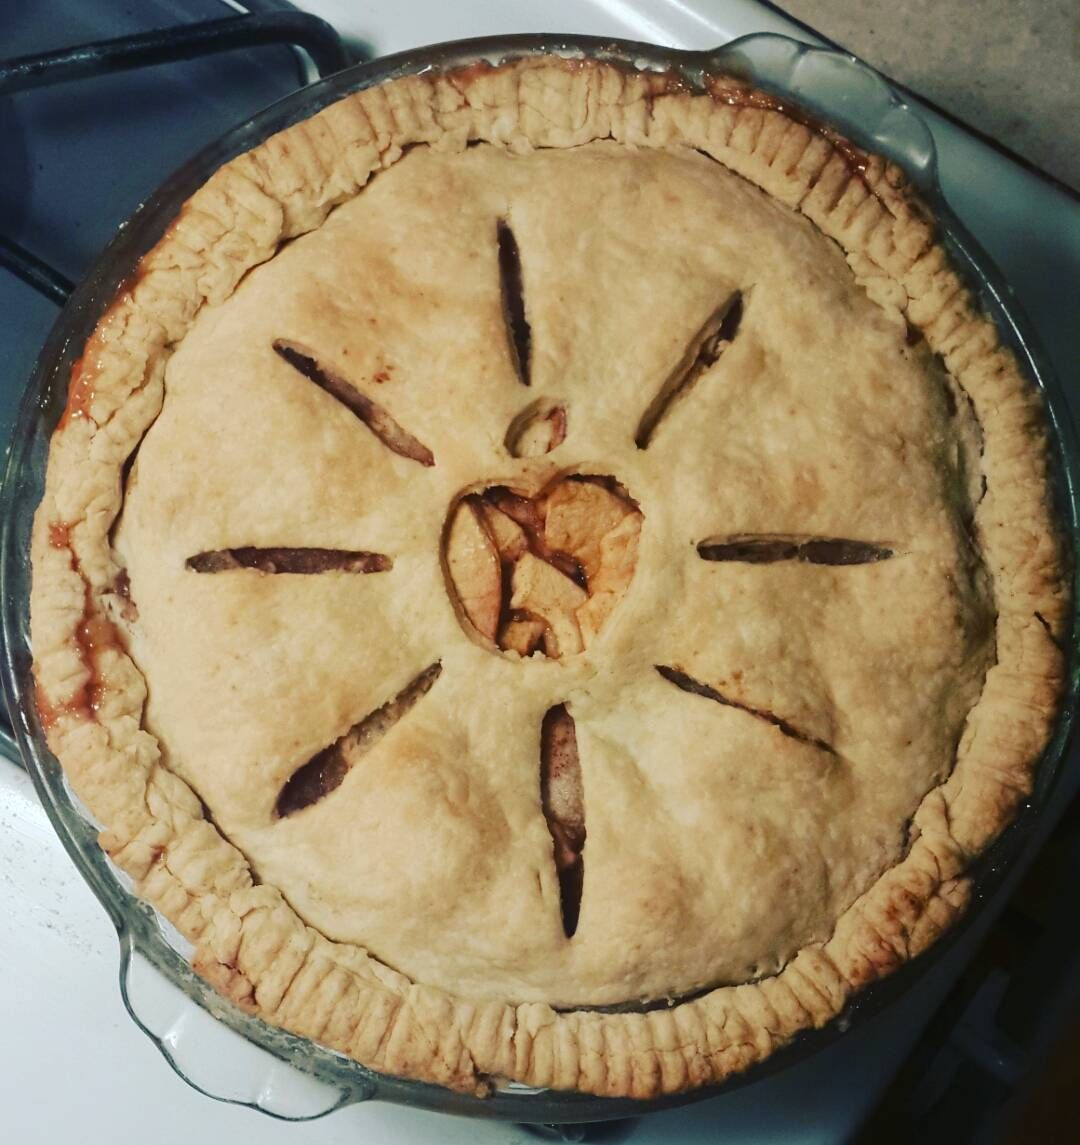 YES LET'S DO THIS  #applepie #freshpicked #apple #pie #applepicking #fall #warm #dessert #baking #sweettooth #gimmeaslice #firstoftheseason  @ryan_simard